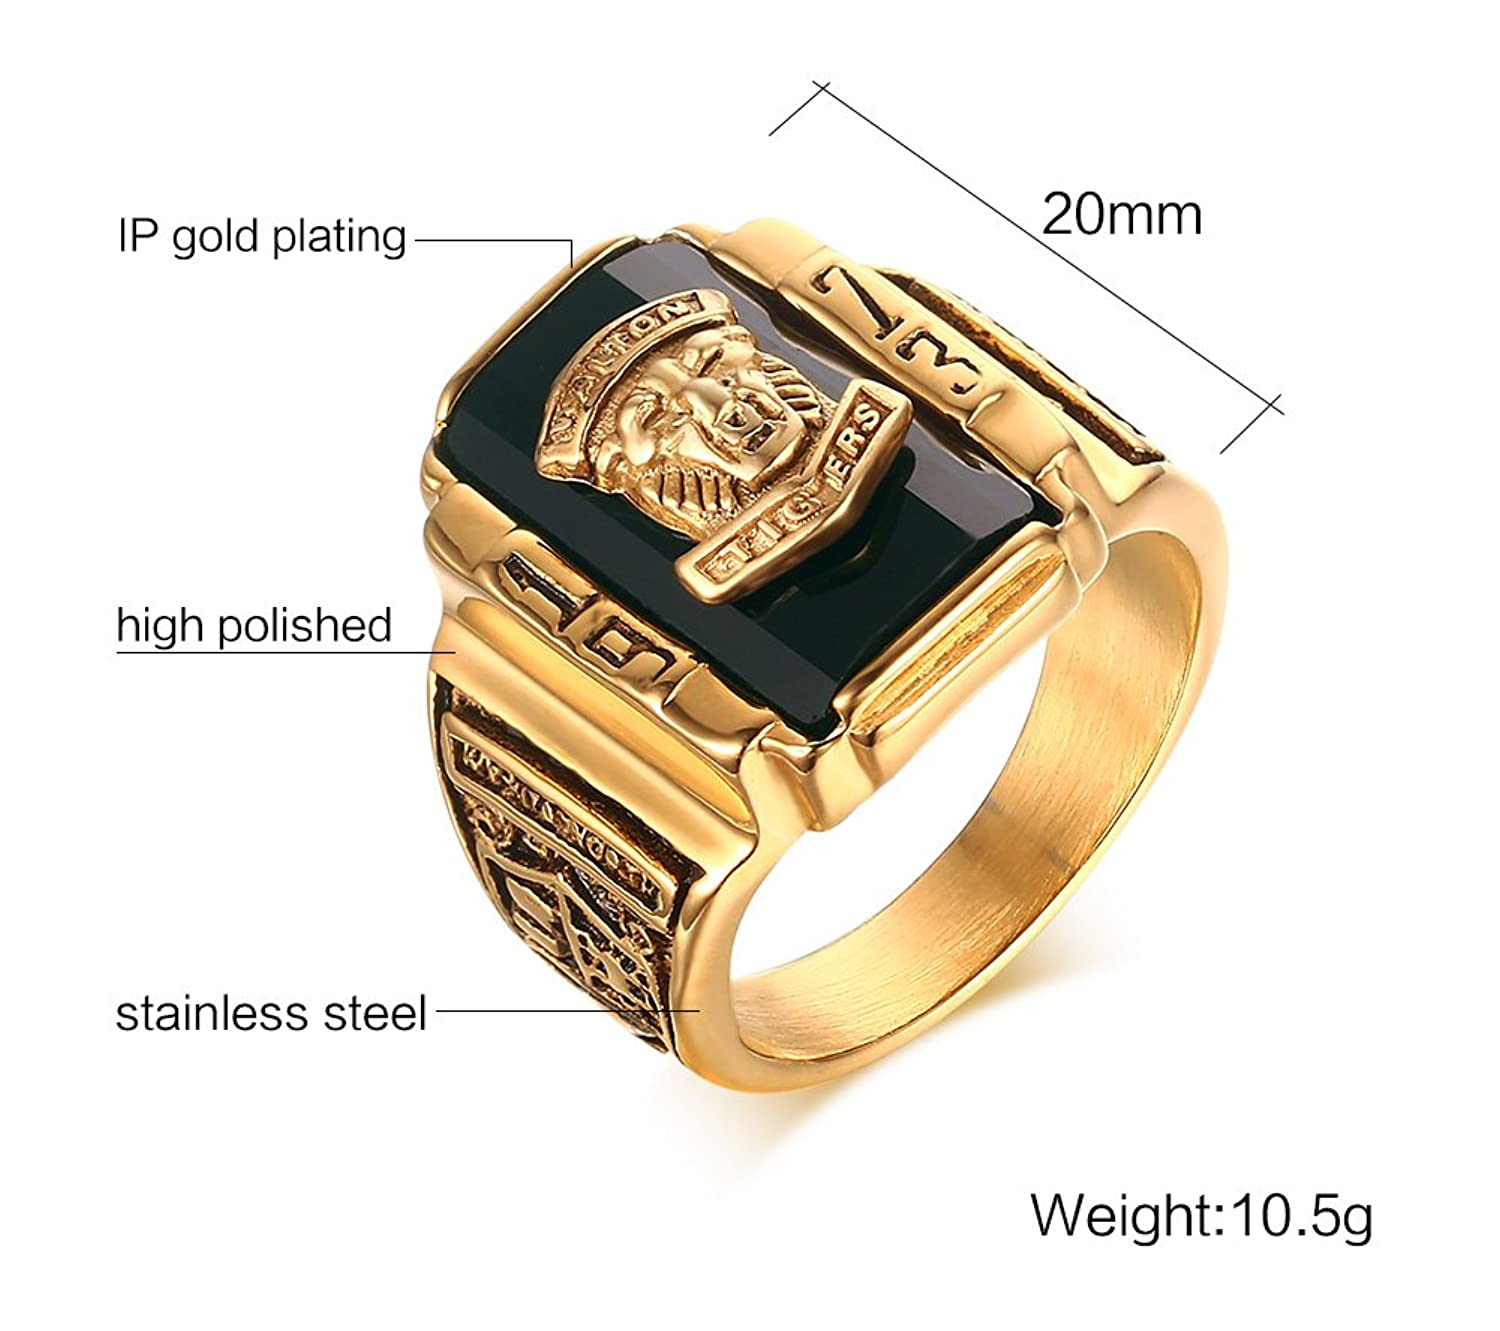 solid initial men gold s fully grams cast ring in asp highly mens jewellery hallmarked p for polished